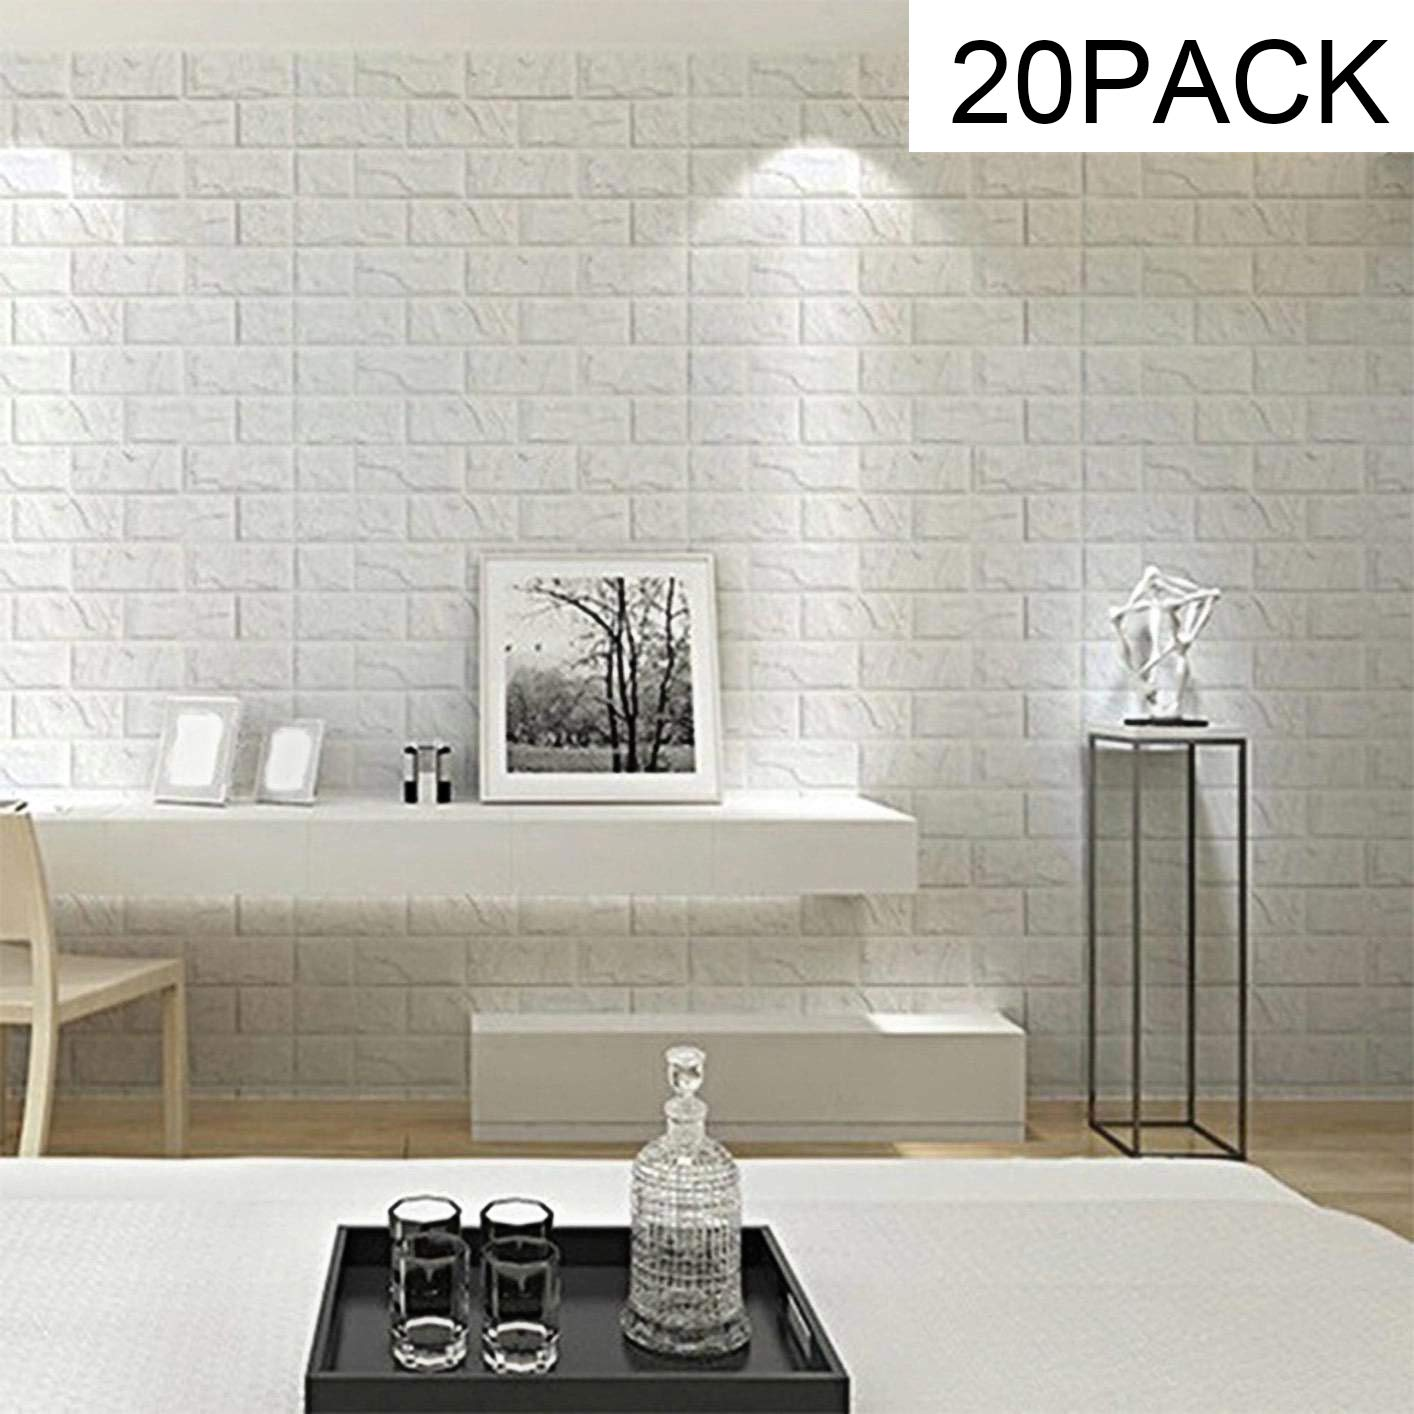 Brick Wallpaper-Masione 3D Wall Panels Peel and Stick Self-Adhesive Real Bricks Effect Wallpapers for Kids Room Bathroom Living Room TV Walls Sofa Background 116.26 sq.ft 20 Packs